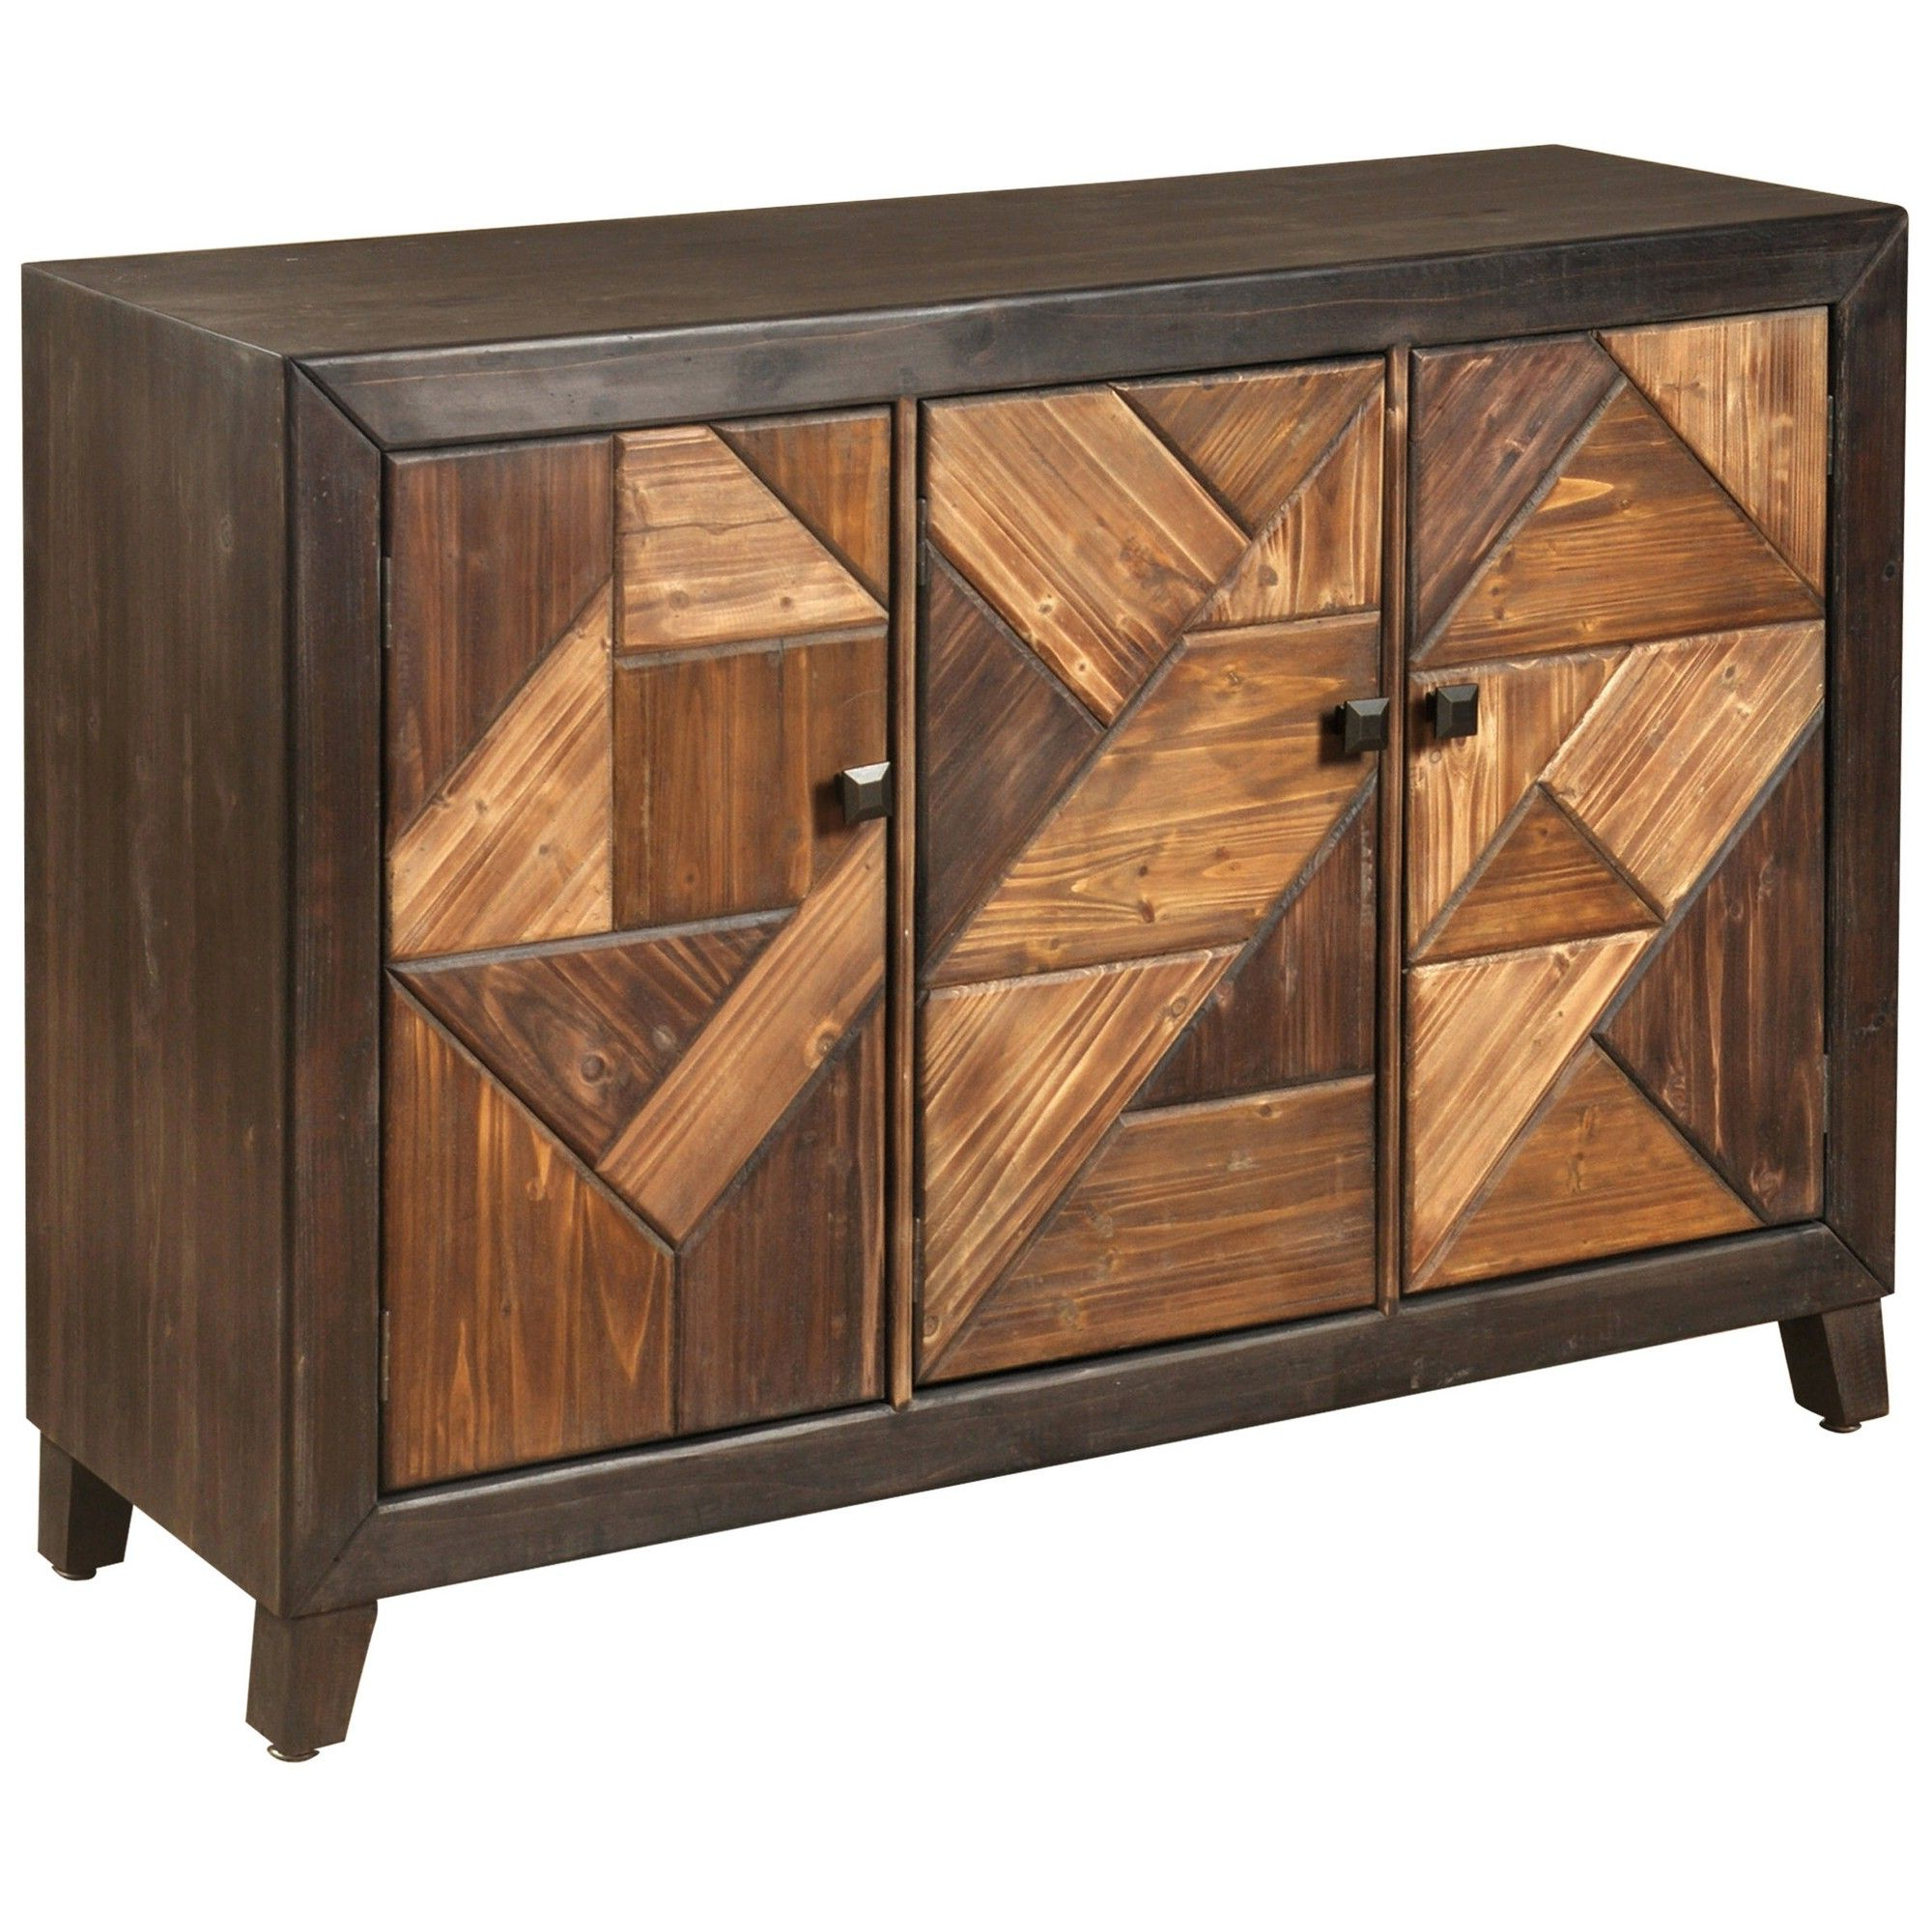 Stylecraft 3 Door Chevron Credenza Espresso Brown | Products Intended For Casolino Sideboards (View 19 of 20)